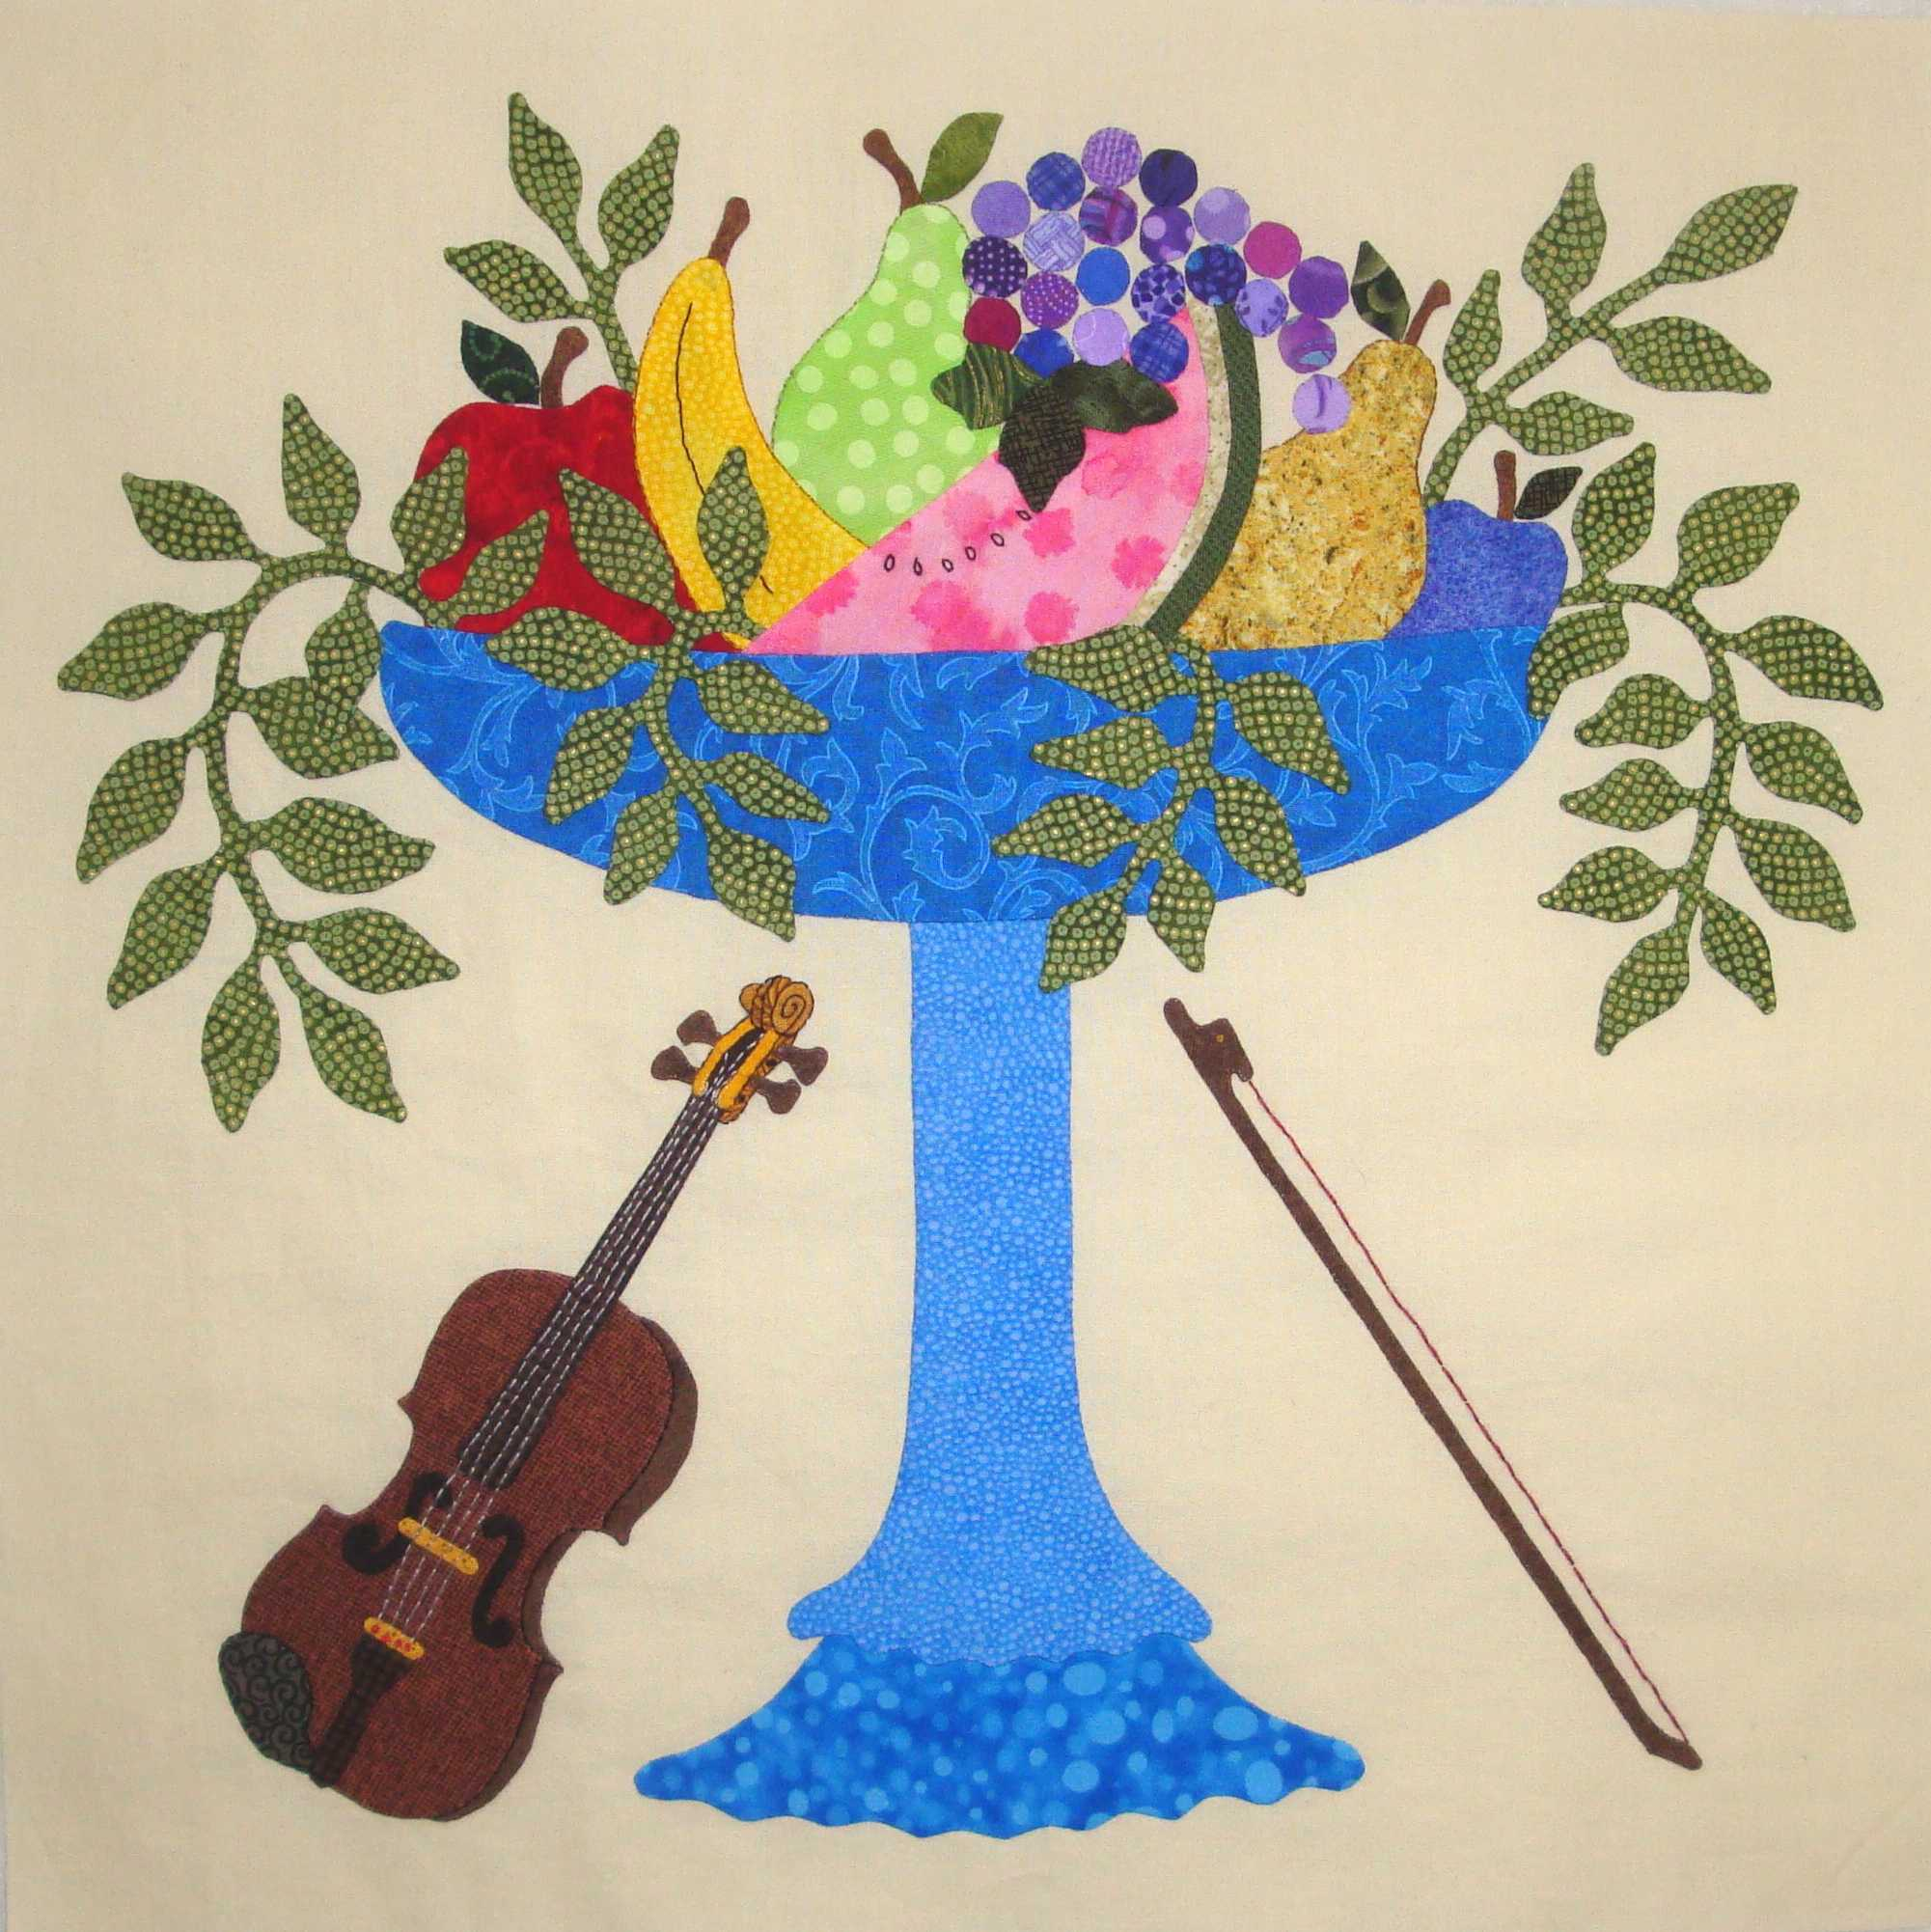 Fabric Therapy Online Fruit Compote Violin Music